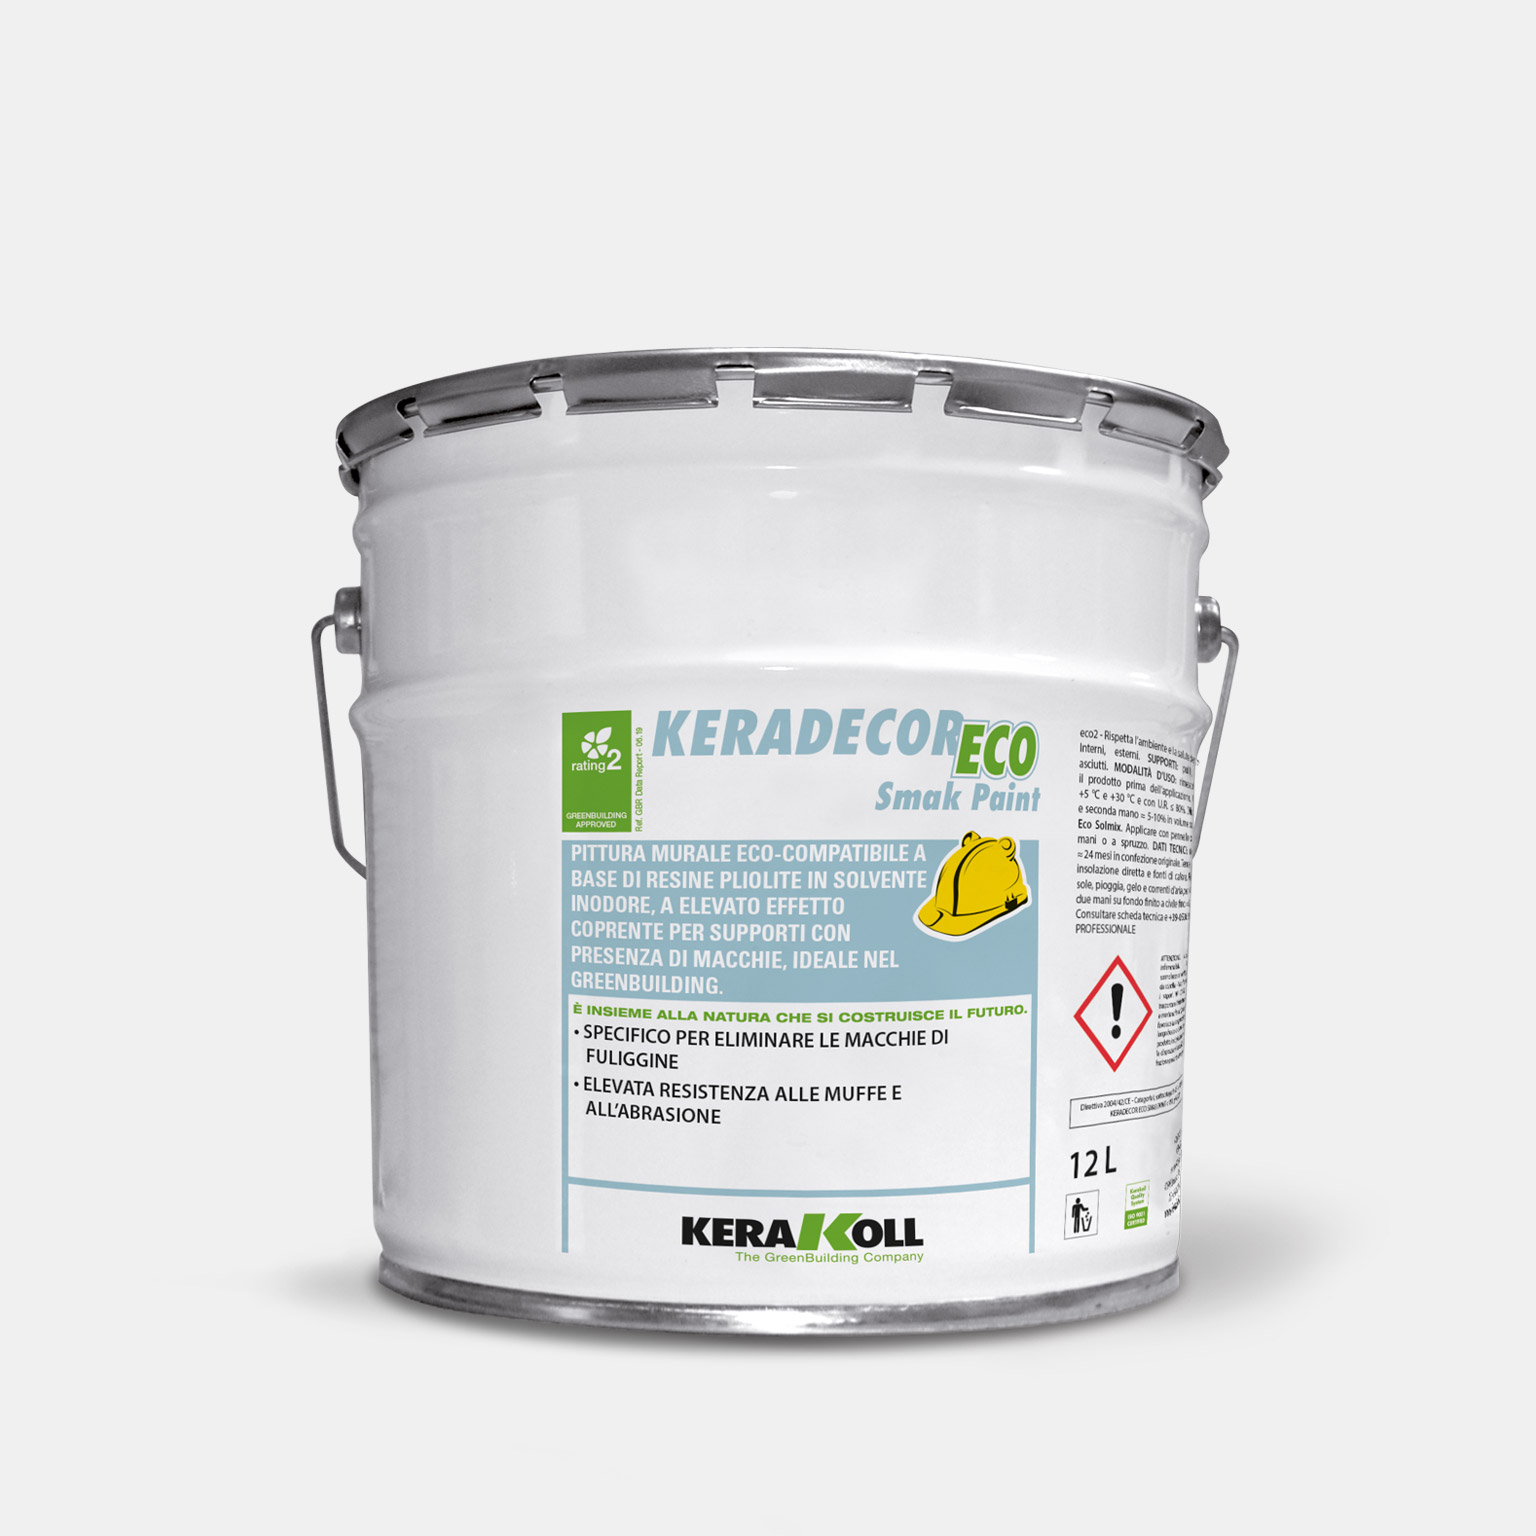 Keradecor Eco Smak Paint - immagine pack